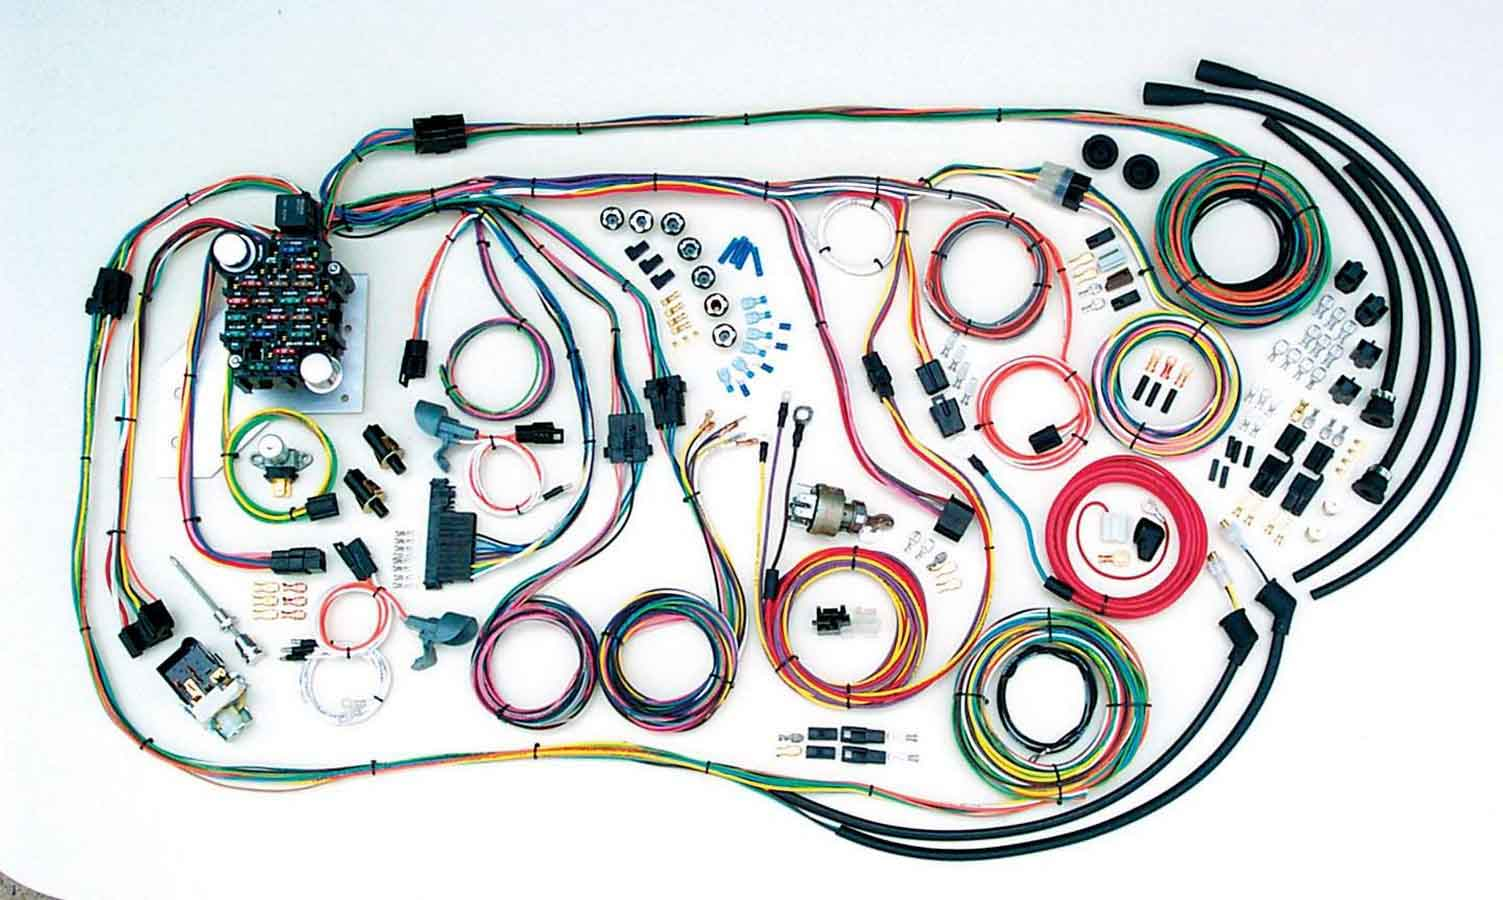 1957 Chevy Instrument Wiring Harness Library Painless For American Autowire System Truck 1955 59 Kit P N 500481 Ebay